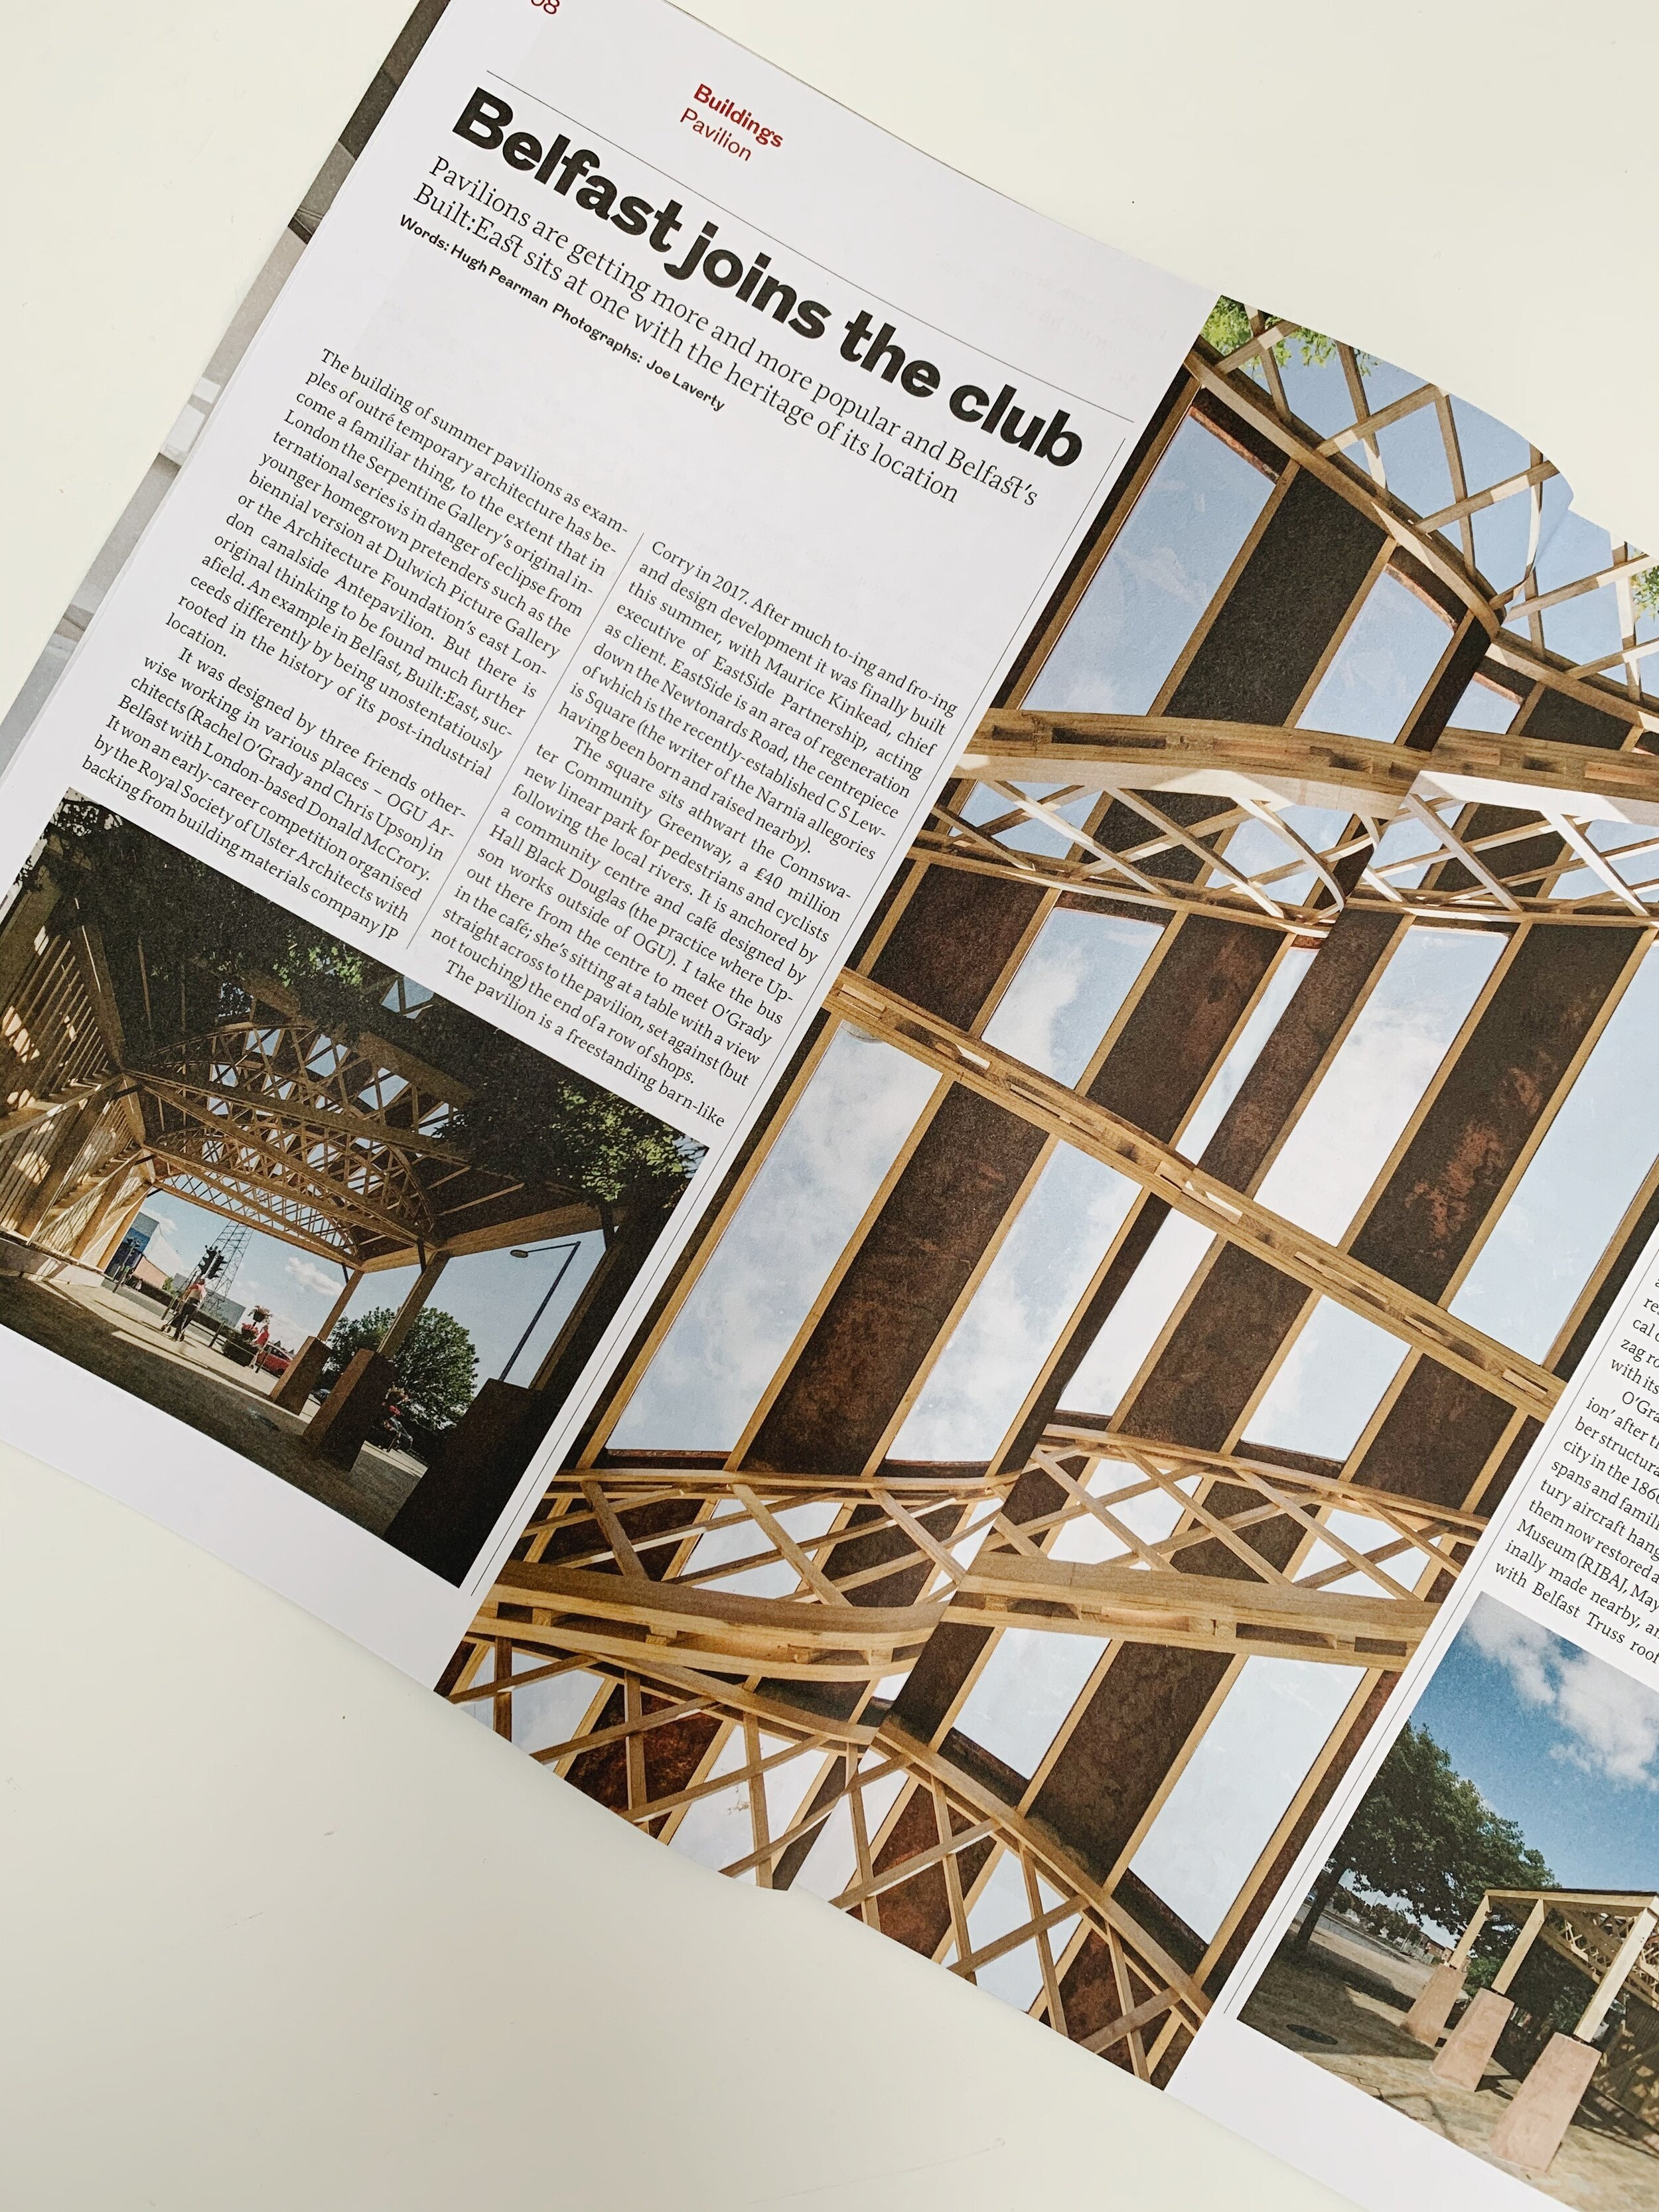 October 2019   Great to see former collaborators at OGU Architects be healthily recognised in the latest RIBA journal for their Belfast Built:East Pavilion – cover photo too!